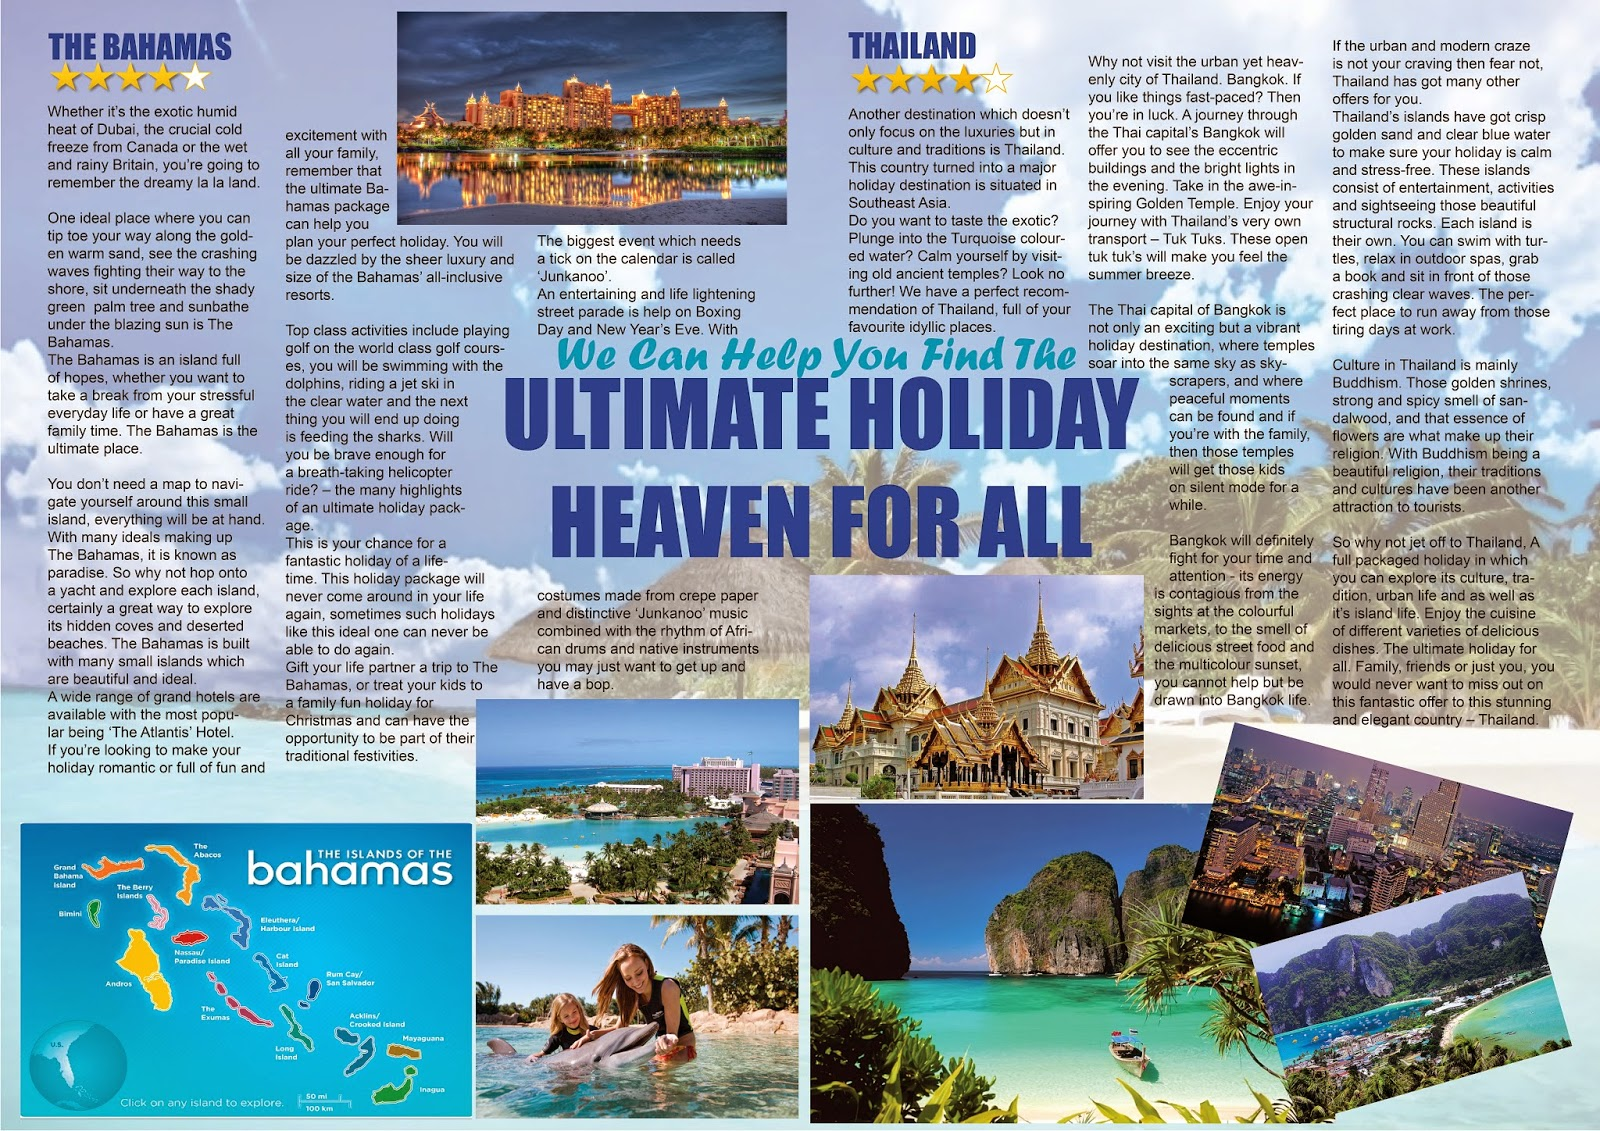 geeta s portfolio 2014 here is an example of one my creative writing piece i created a holiday brochure page which has the purpose to persuade and inform reader to two